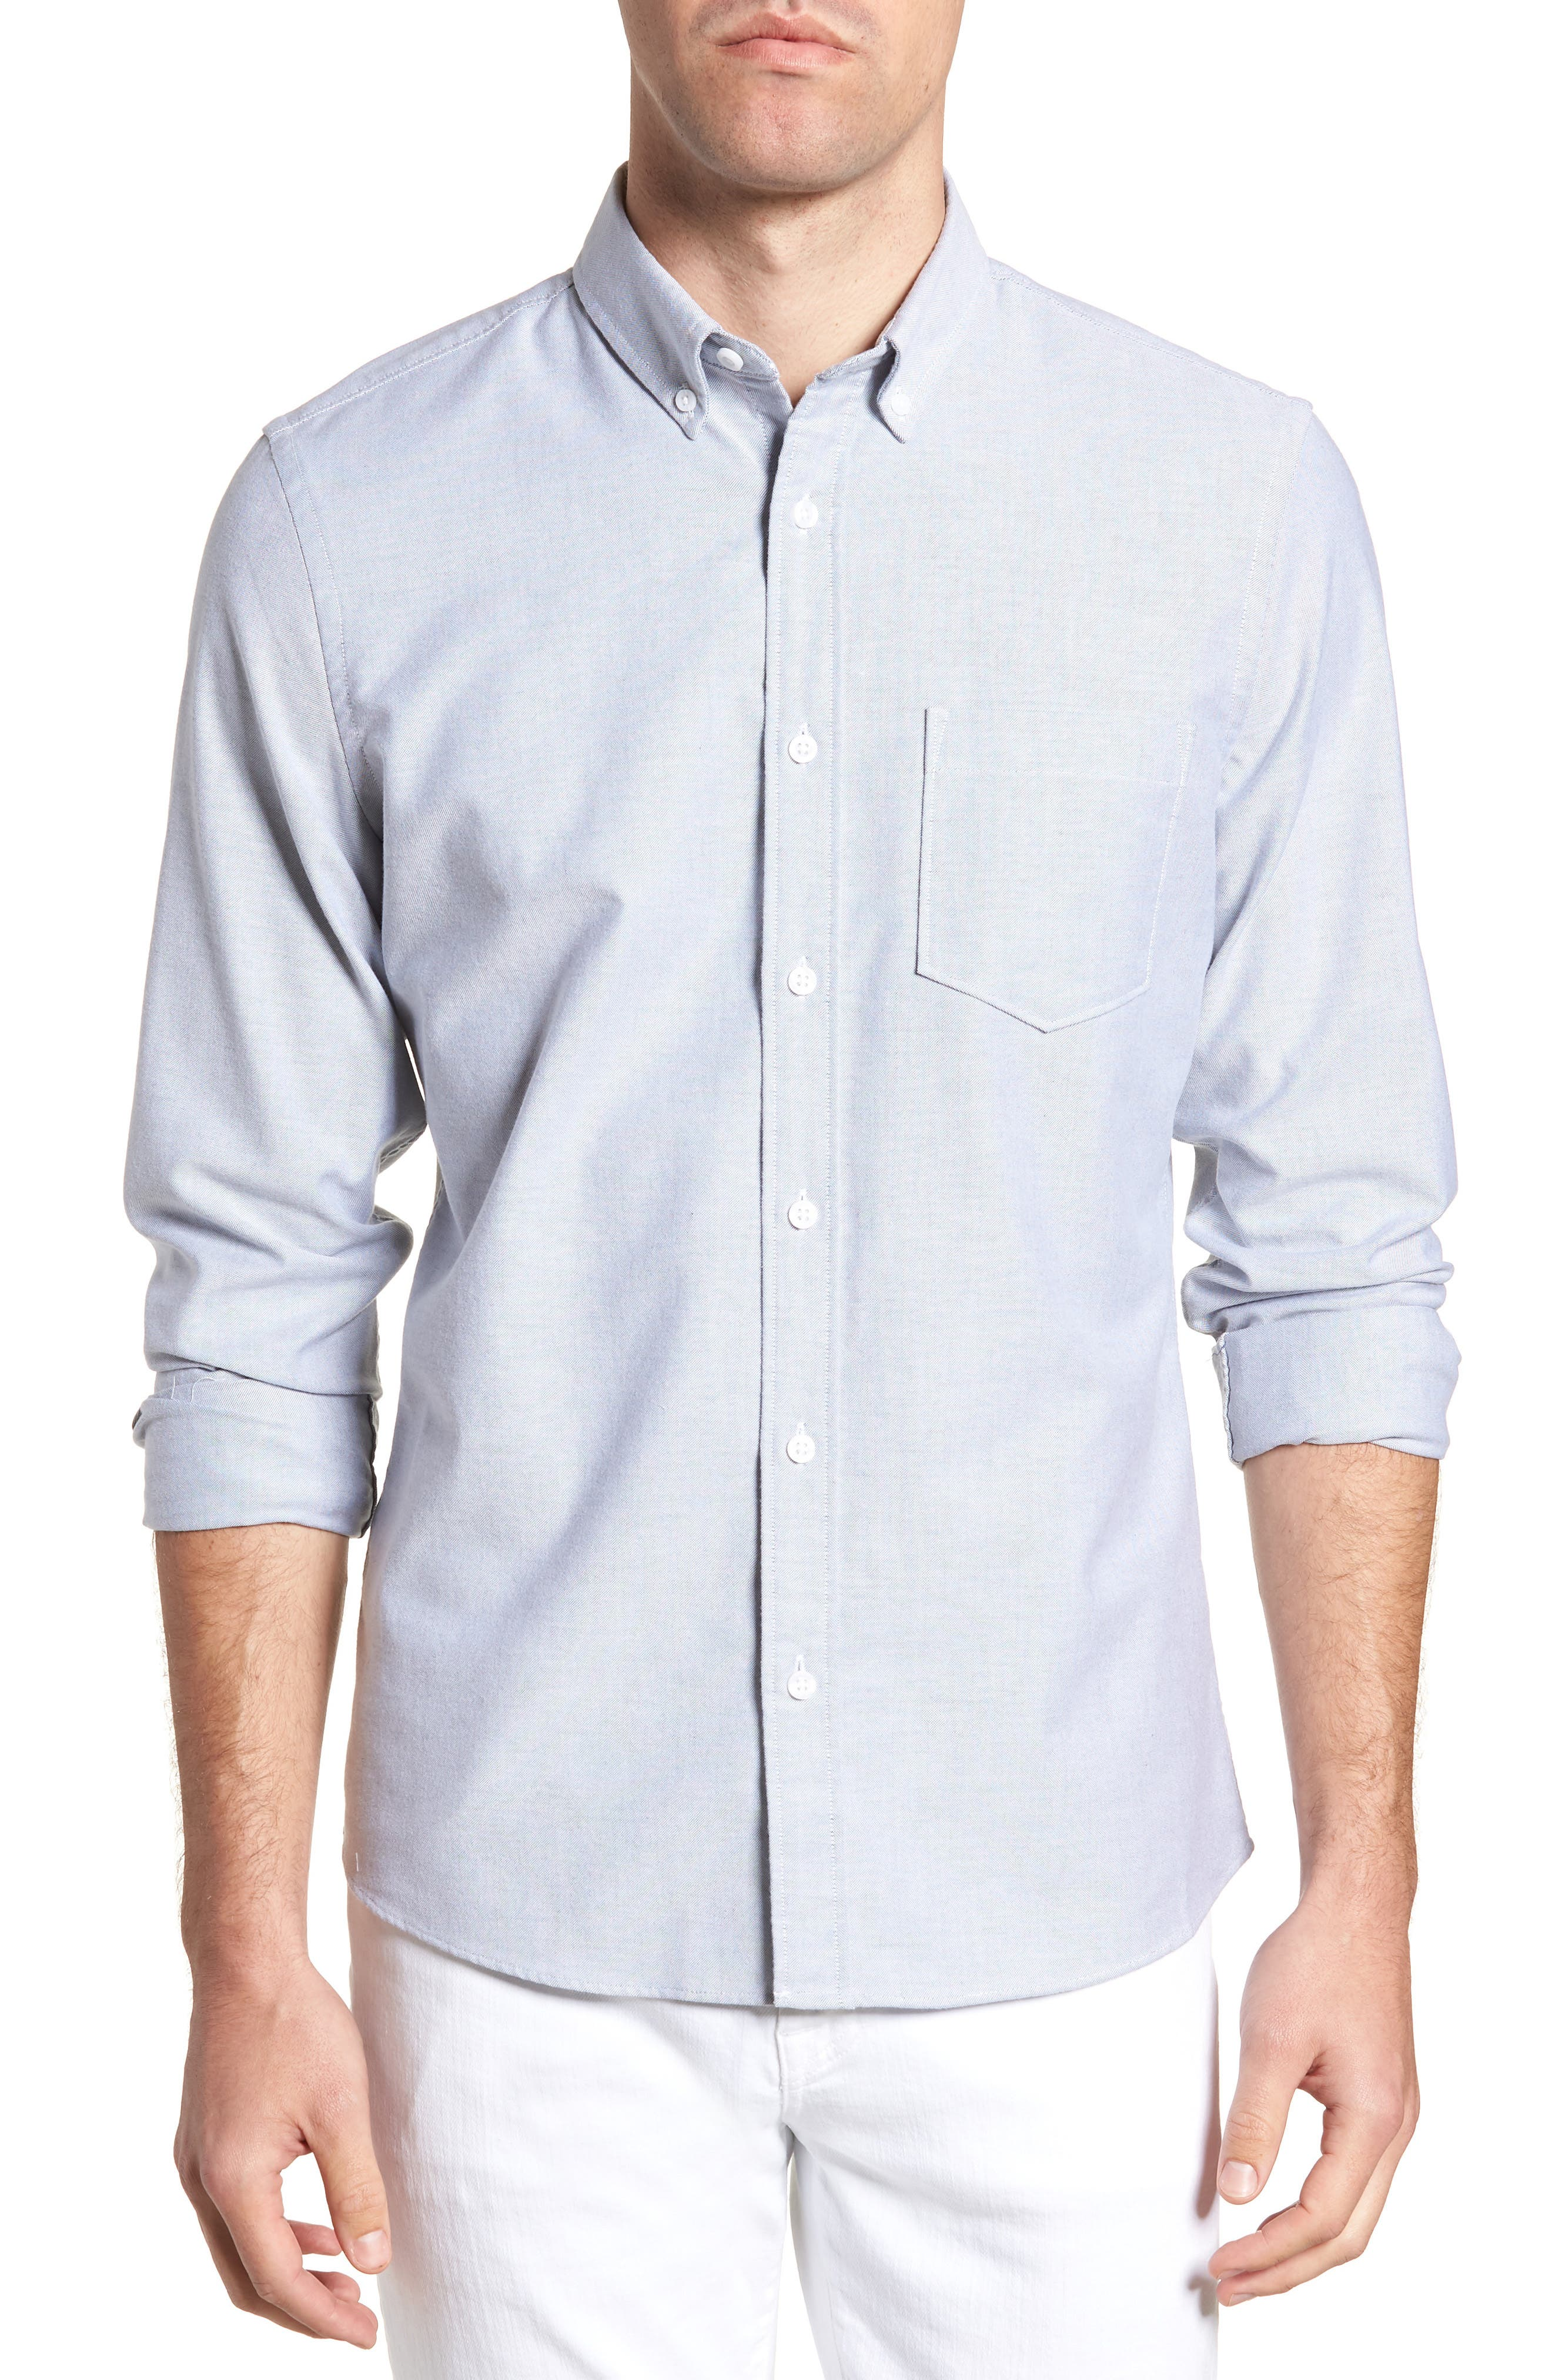 Alternate Image 1 Selected - 1901 Trim Fit Washed Oxford Shirt